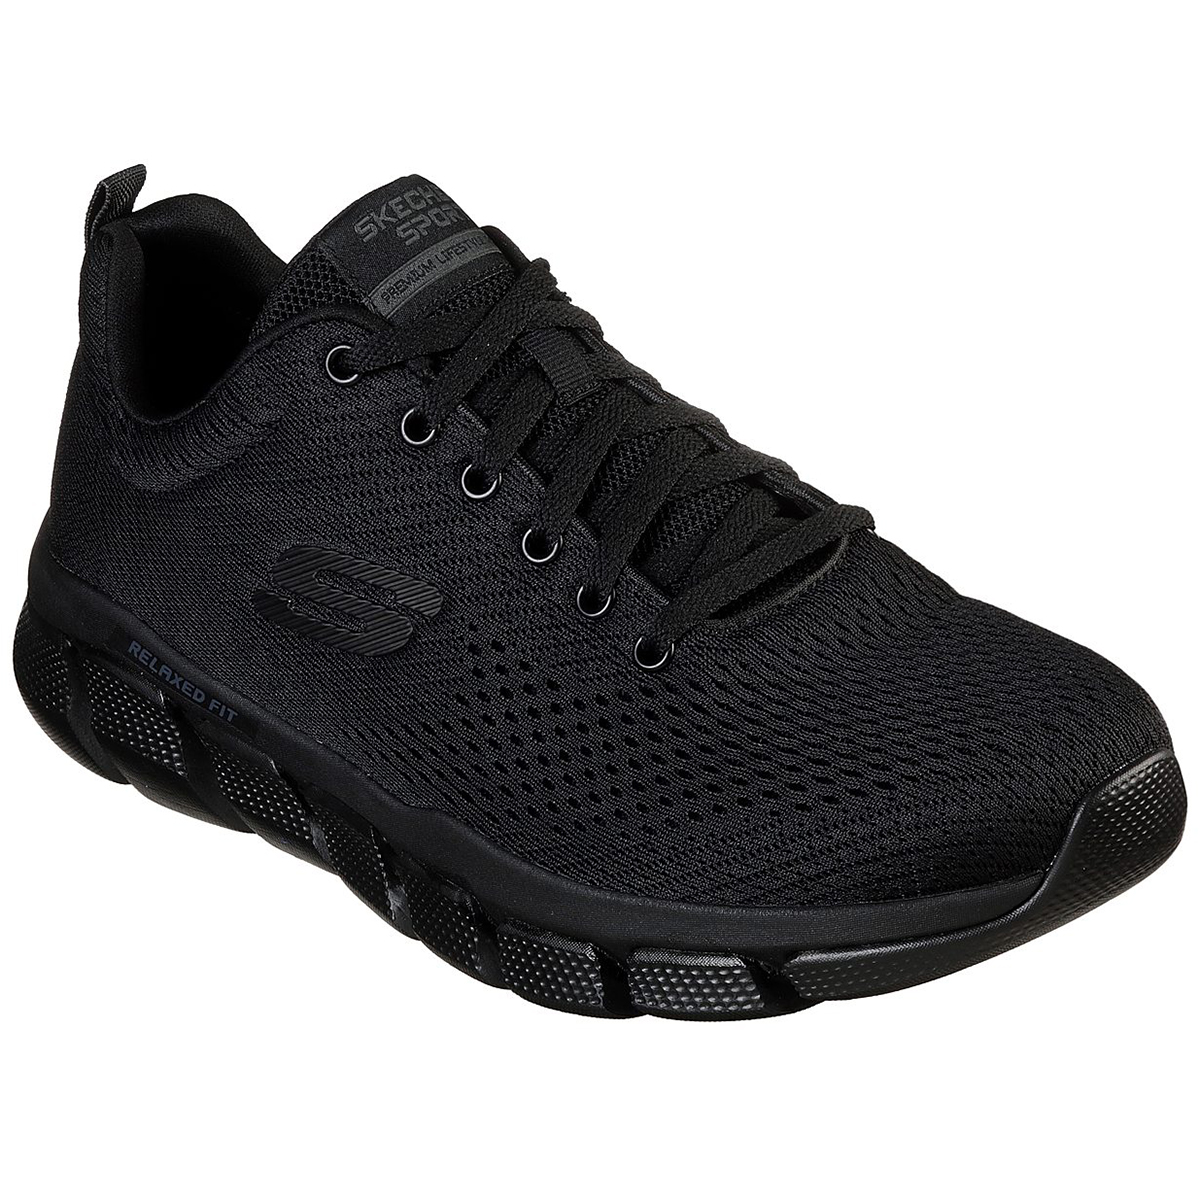 Skechers Men's Relaxed Fit Skech-Flex 3.0 Verko Lace Up Sneakers, Wide - Black, 10.5